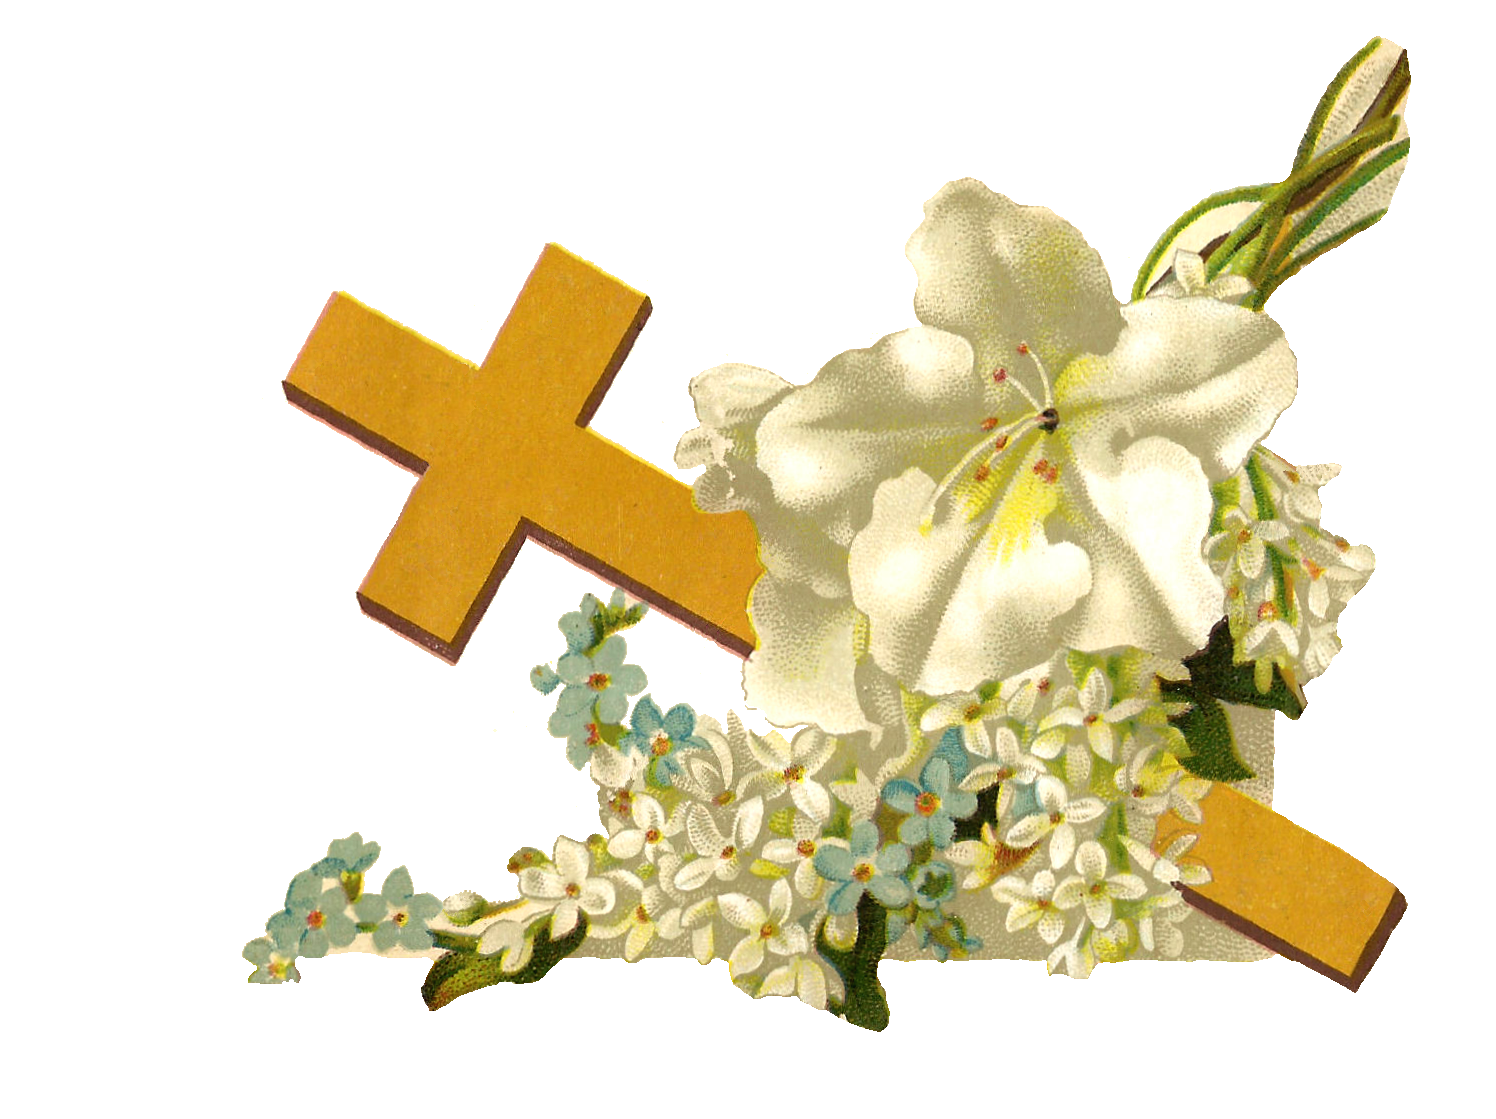 Flower obituary clipart svg library Antique Images: Free Religious Clip Art: Gold Cross and White ... svg library